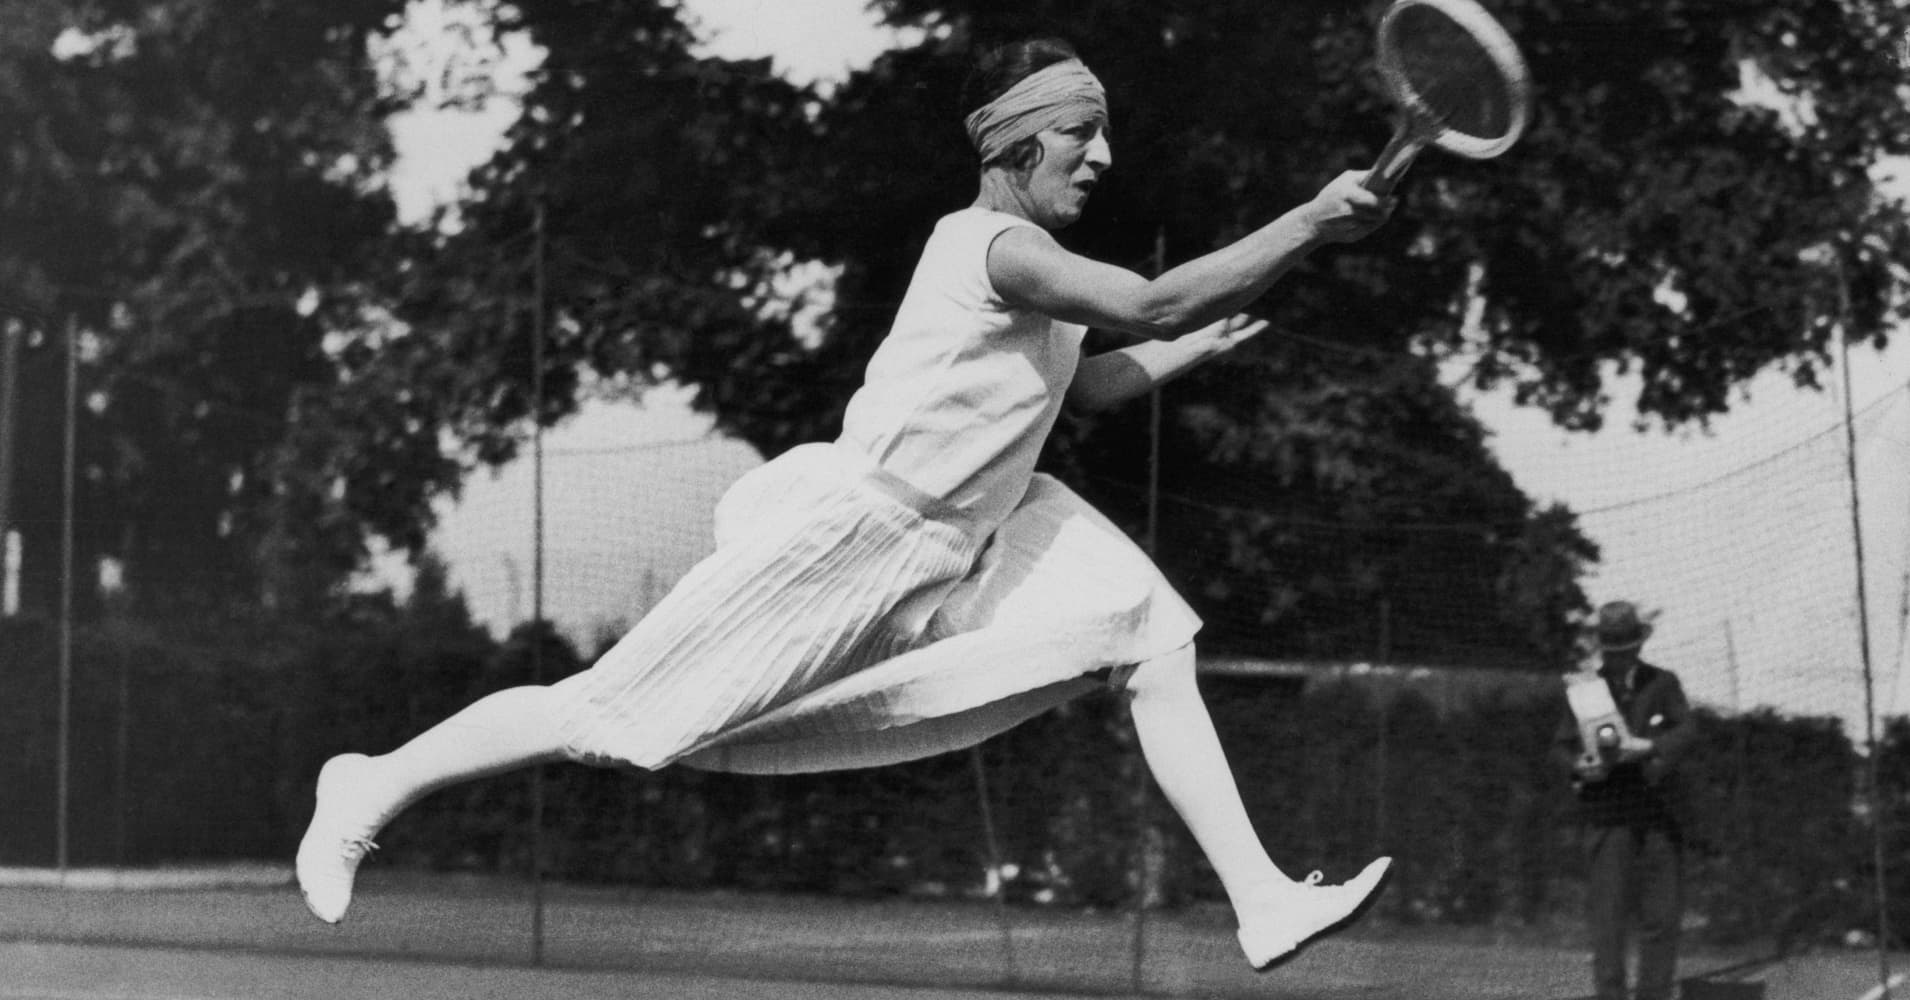 French tennis champion Suzanne Lenglen